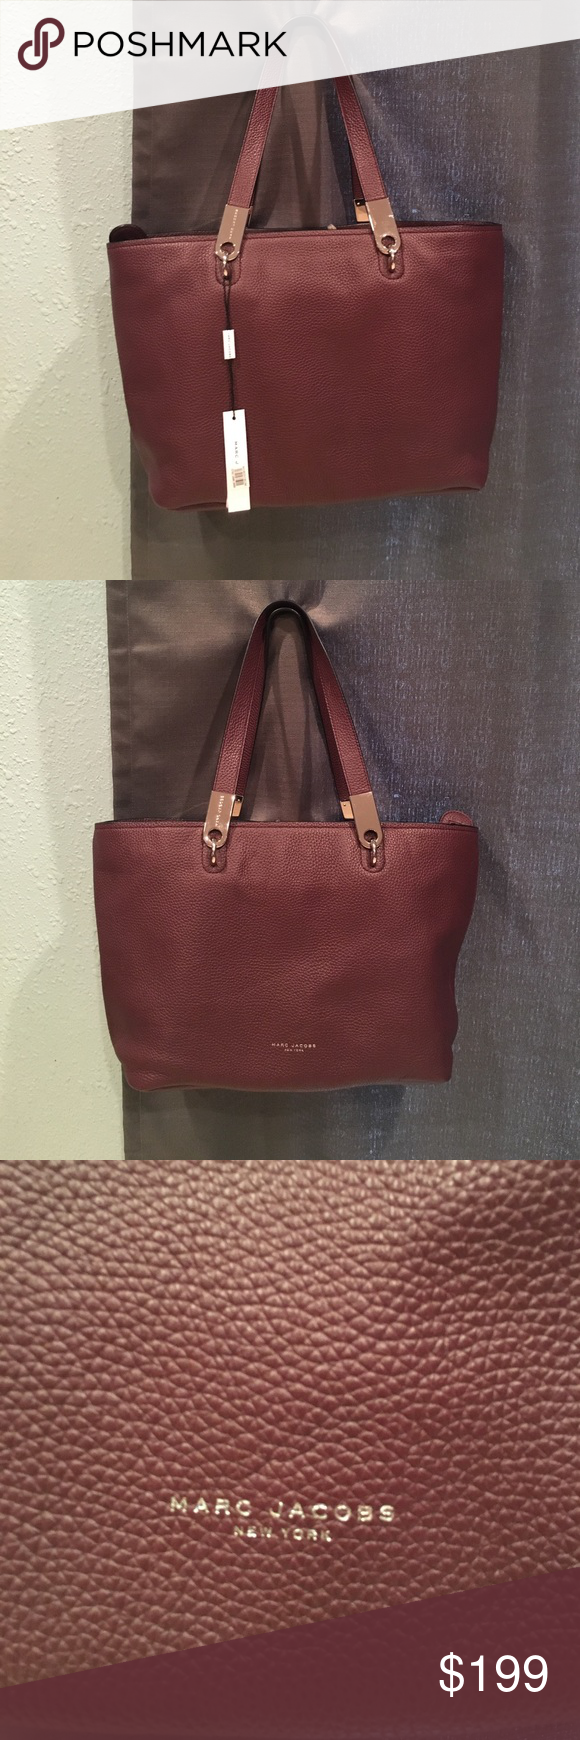 f4600255ba54 MARC JACOBS Pike Place East West Leather Tote Modern